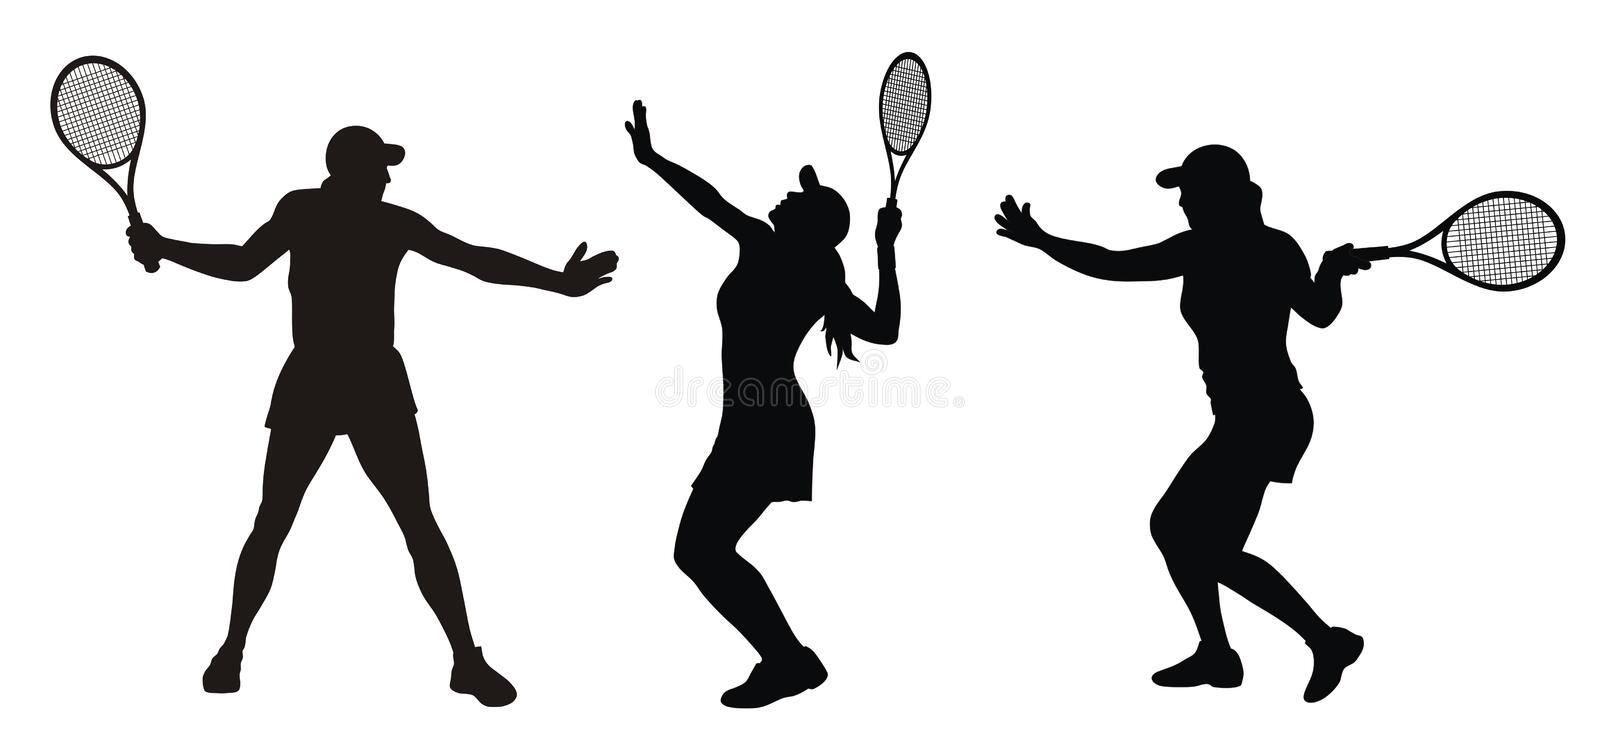 tennis vektor illustrationer